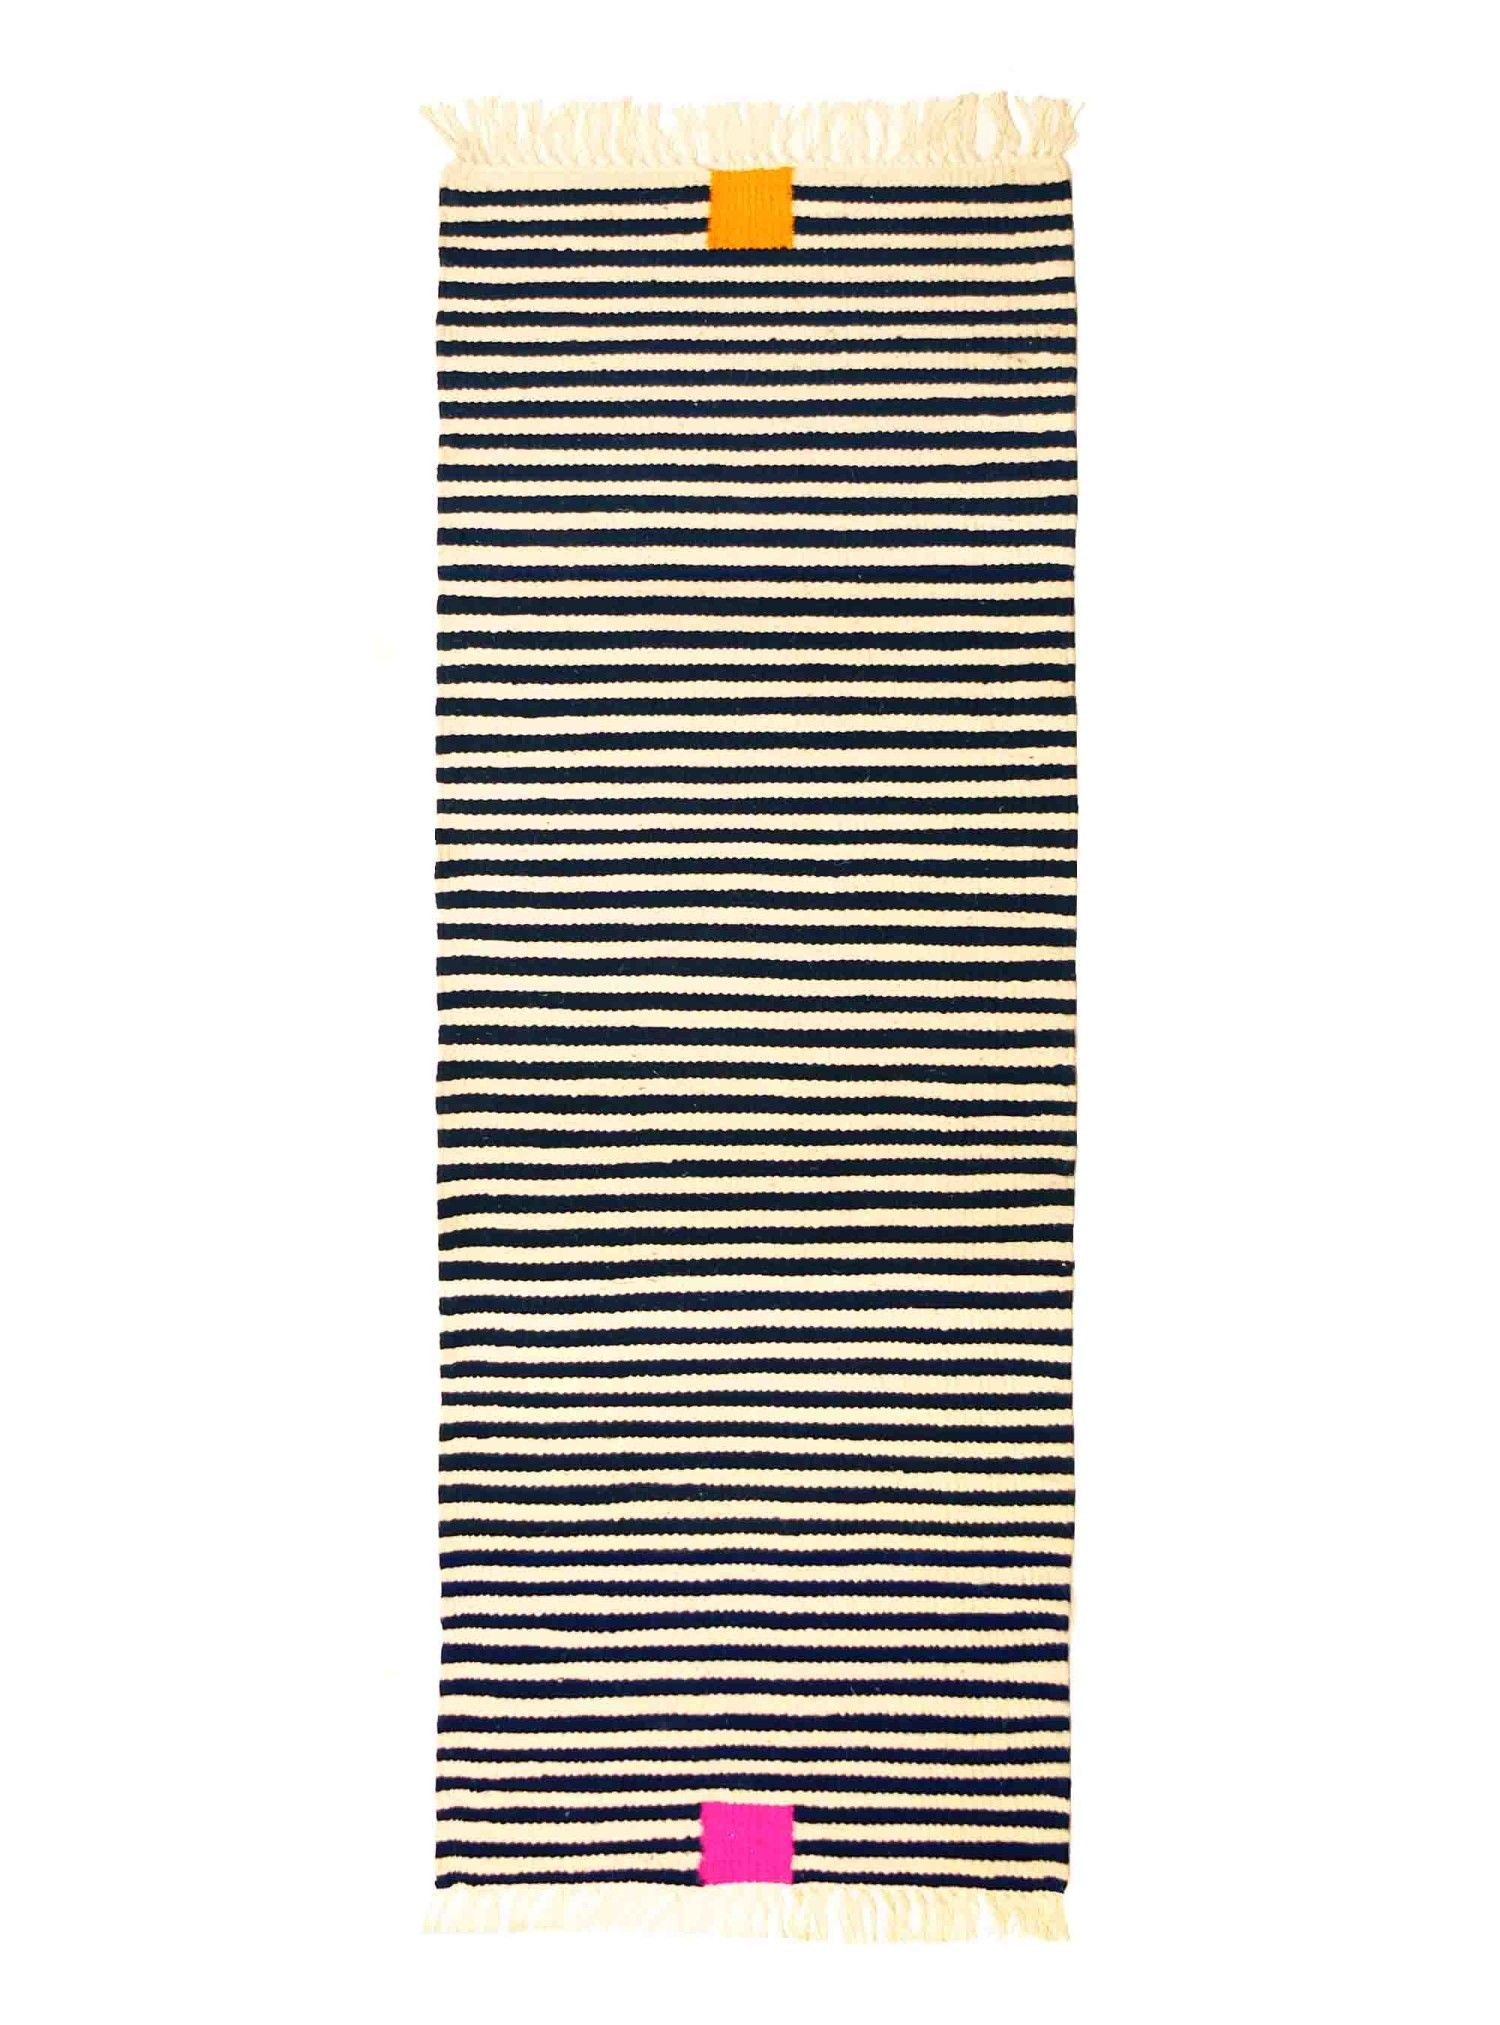 Runnerrug kira-cph Kitten-stripes no. 1 - 2.350 DKK	315 €  OUT OF STOCK – NEW ARRIVAL SPRING 15 Handwoven runnerrug made from thick lambswool and designed by kira-cph.com. The size:  70×220 cm. The runner is woven in 1,5 cm stripes in black and offwhite wool and with a dark pink and an orange square. Kira-cph.com cooperates with a  women's cooperative in North Africa, skilled women are weaving  wool runnerrugs / blankets /  bedspreads and cushions. Woven in thick, soft sheep's wool.